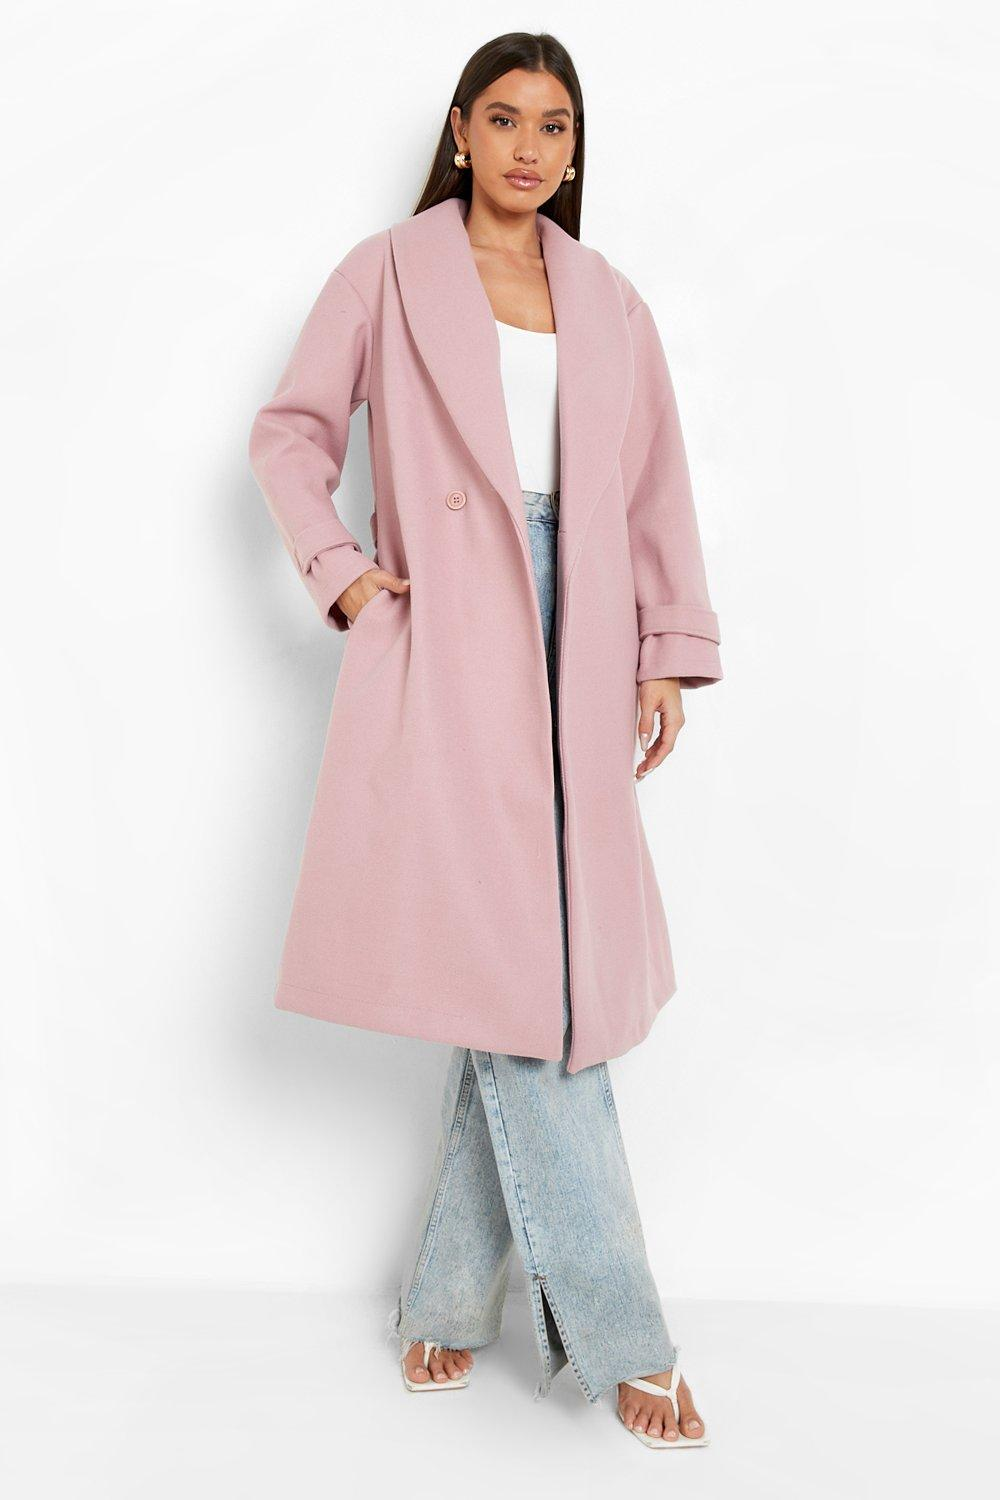 Vintage Coats & Jackets | Retro Coats and Jackets Womens Belted Wool Look Robe Coat - Pink - 12 $33.60 AT vintagedancer.com